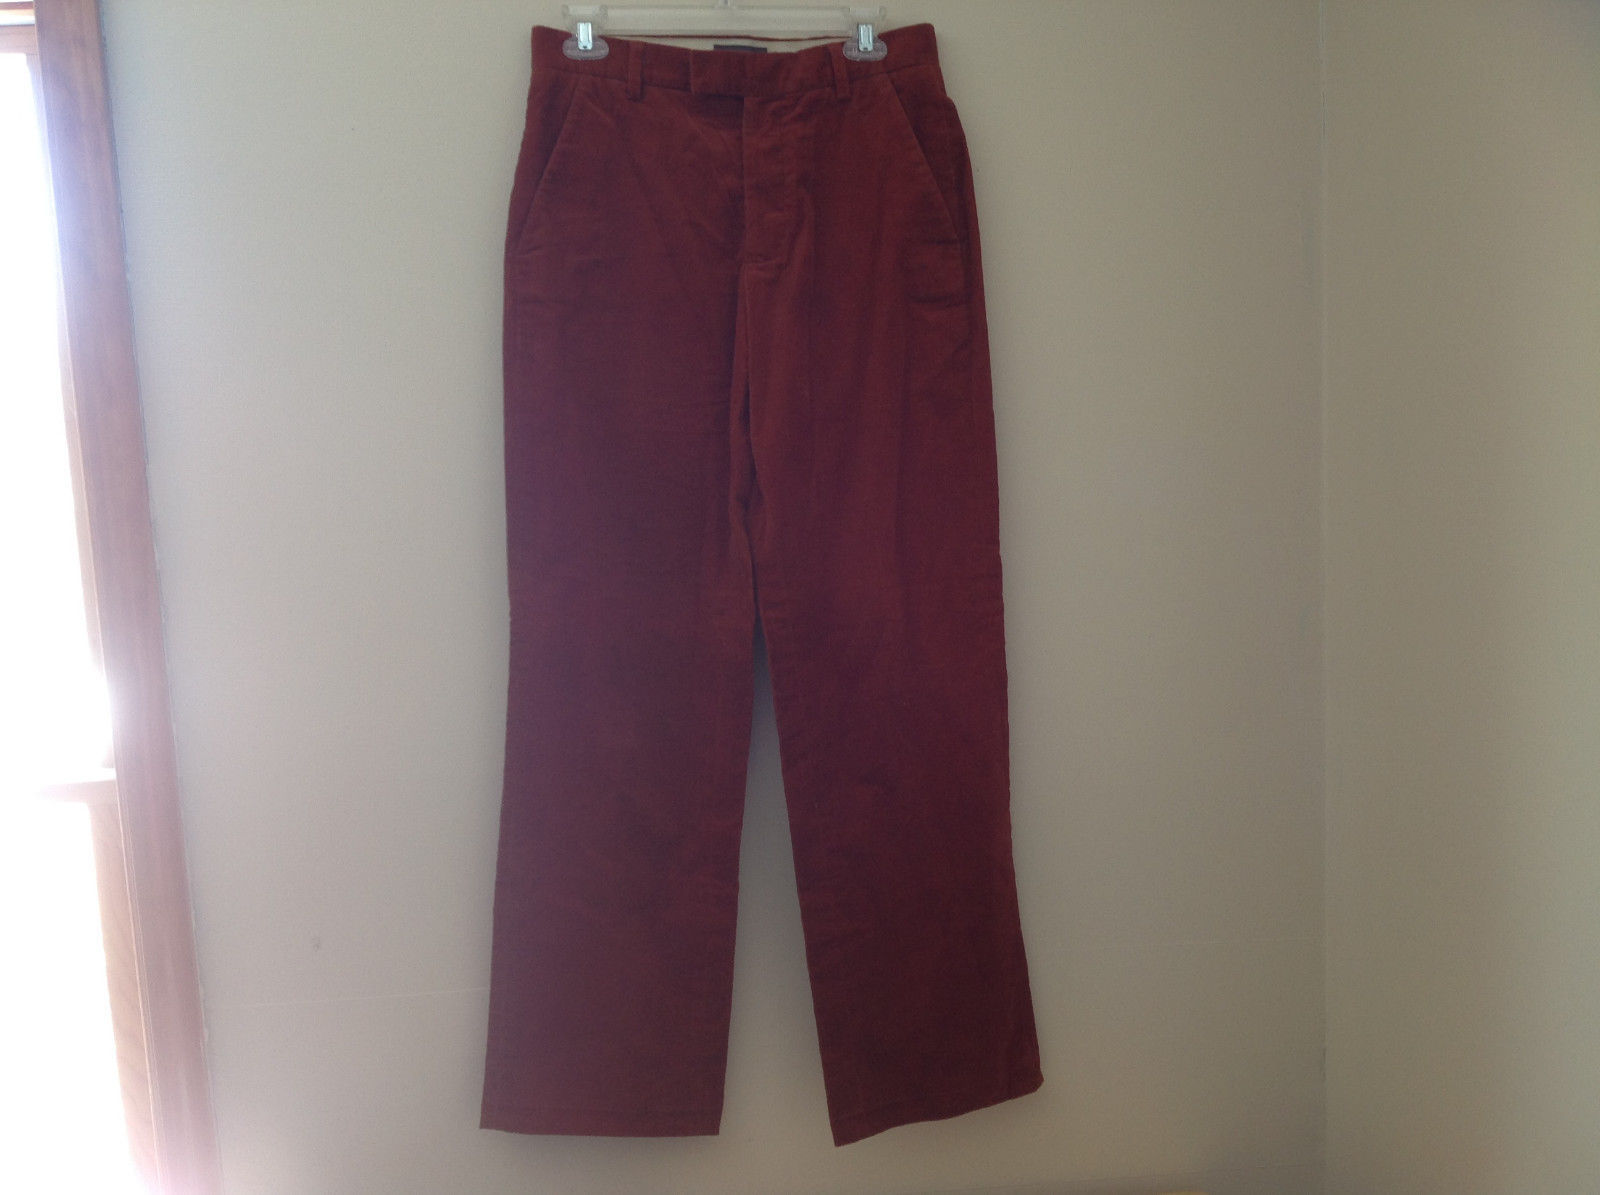 Burnt Orange Corduroy Work Pants by Banana Republic 4 Pockets Size 29 by 32